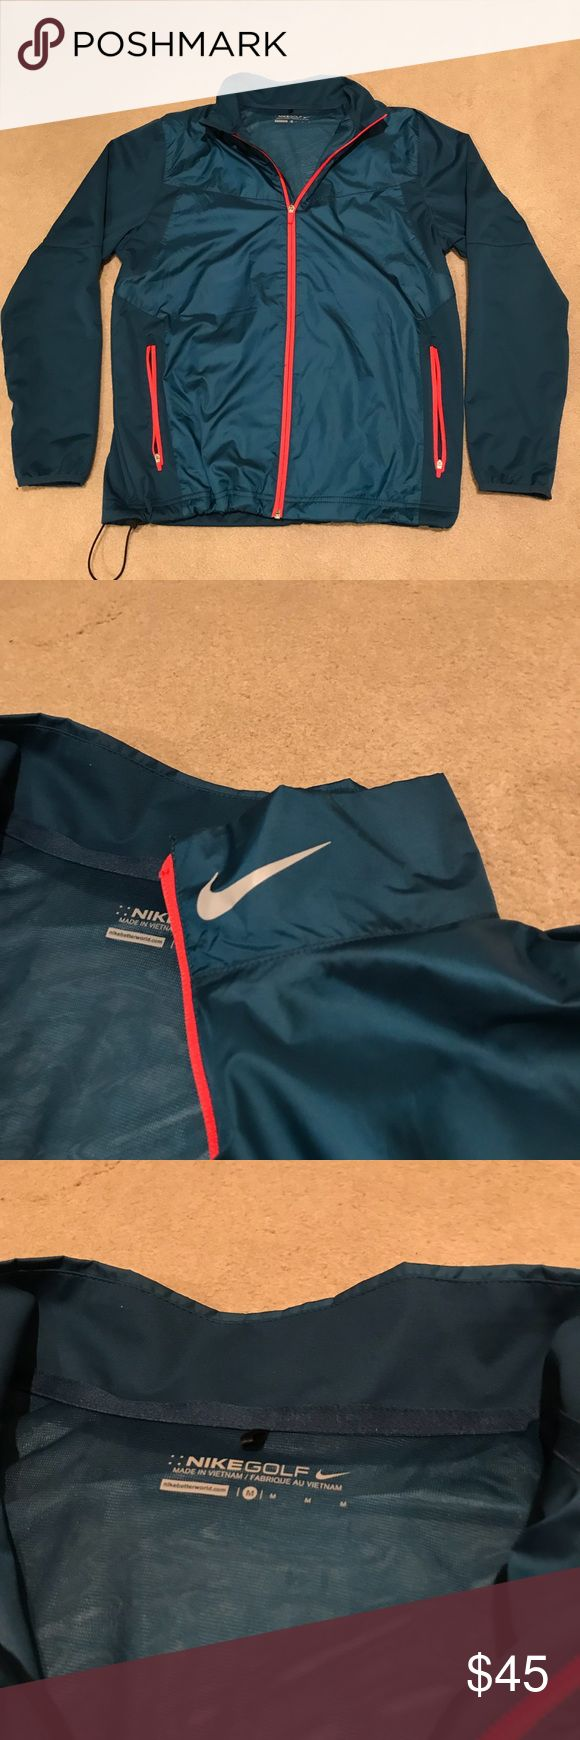 Nike Golf Shield Waterproof full zip Jacket Full zip Nike shield golf waterproof jacket. Turquoise color with orange zipper linings. Two front pockets and a draw string waist. Reflective Nike logo on the collar. Nike Jackets & Coats Windbreakers